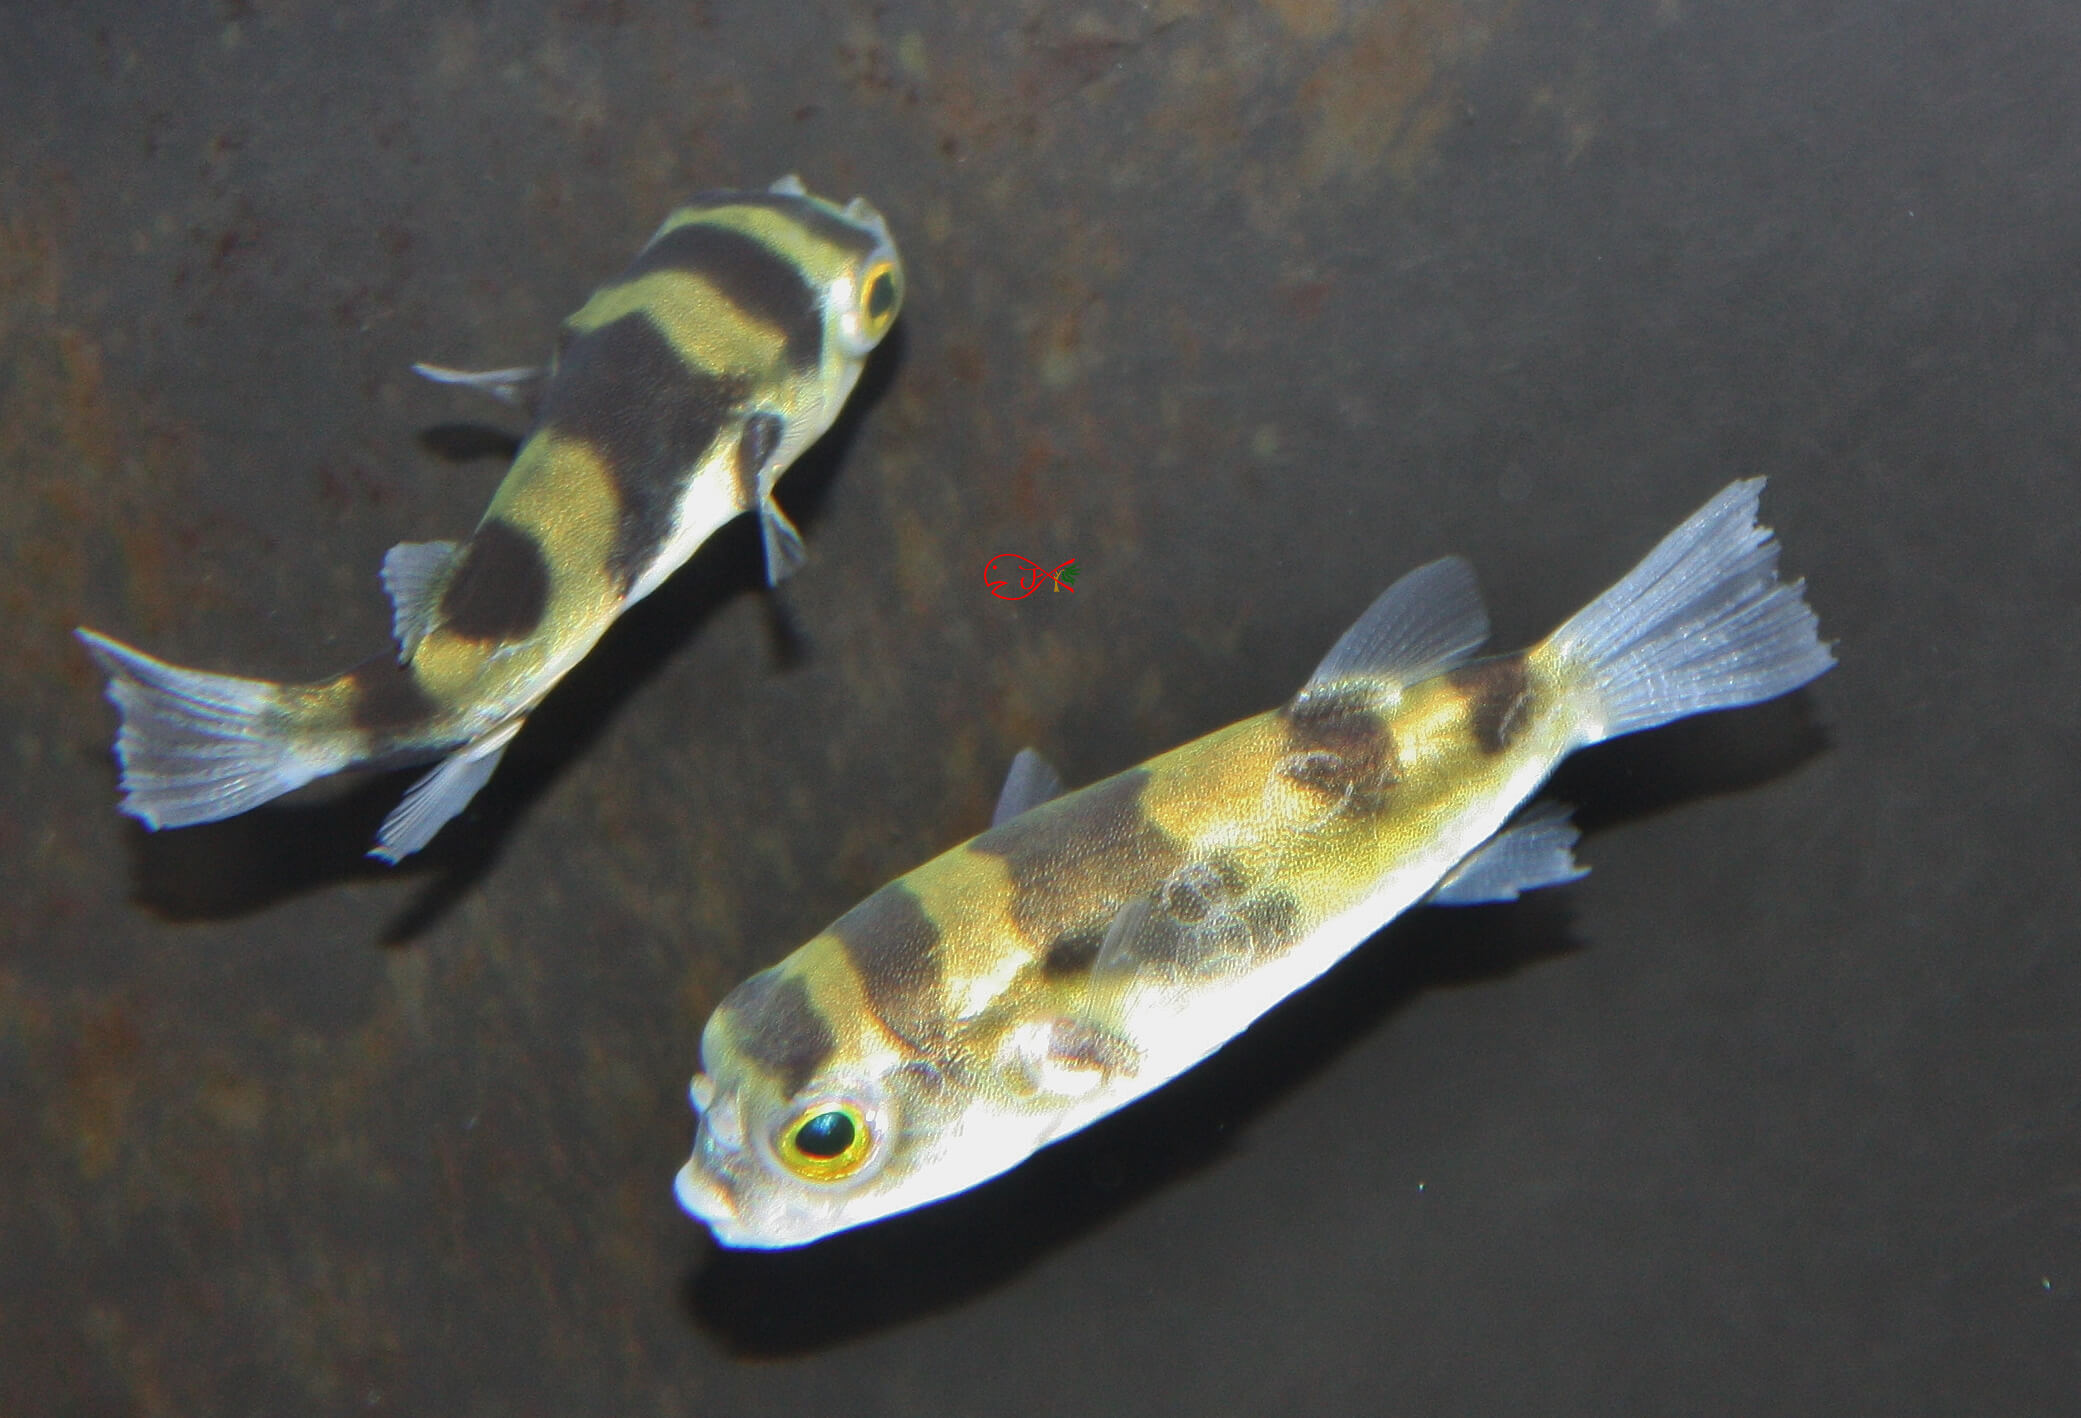 Freshwater fish for sale absolutely fish sa bumble bee for Freshwater fish for sale